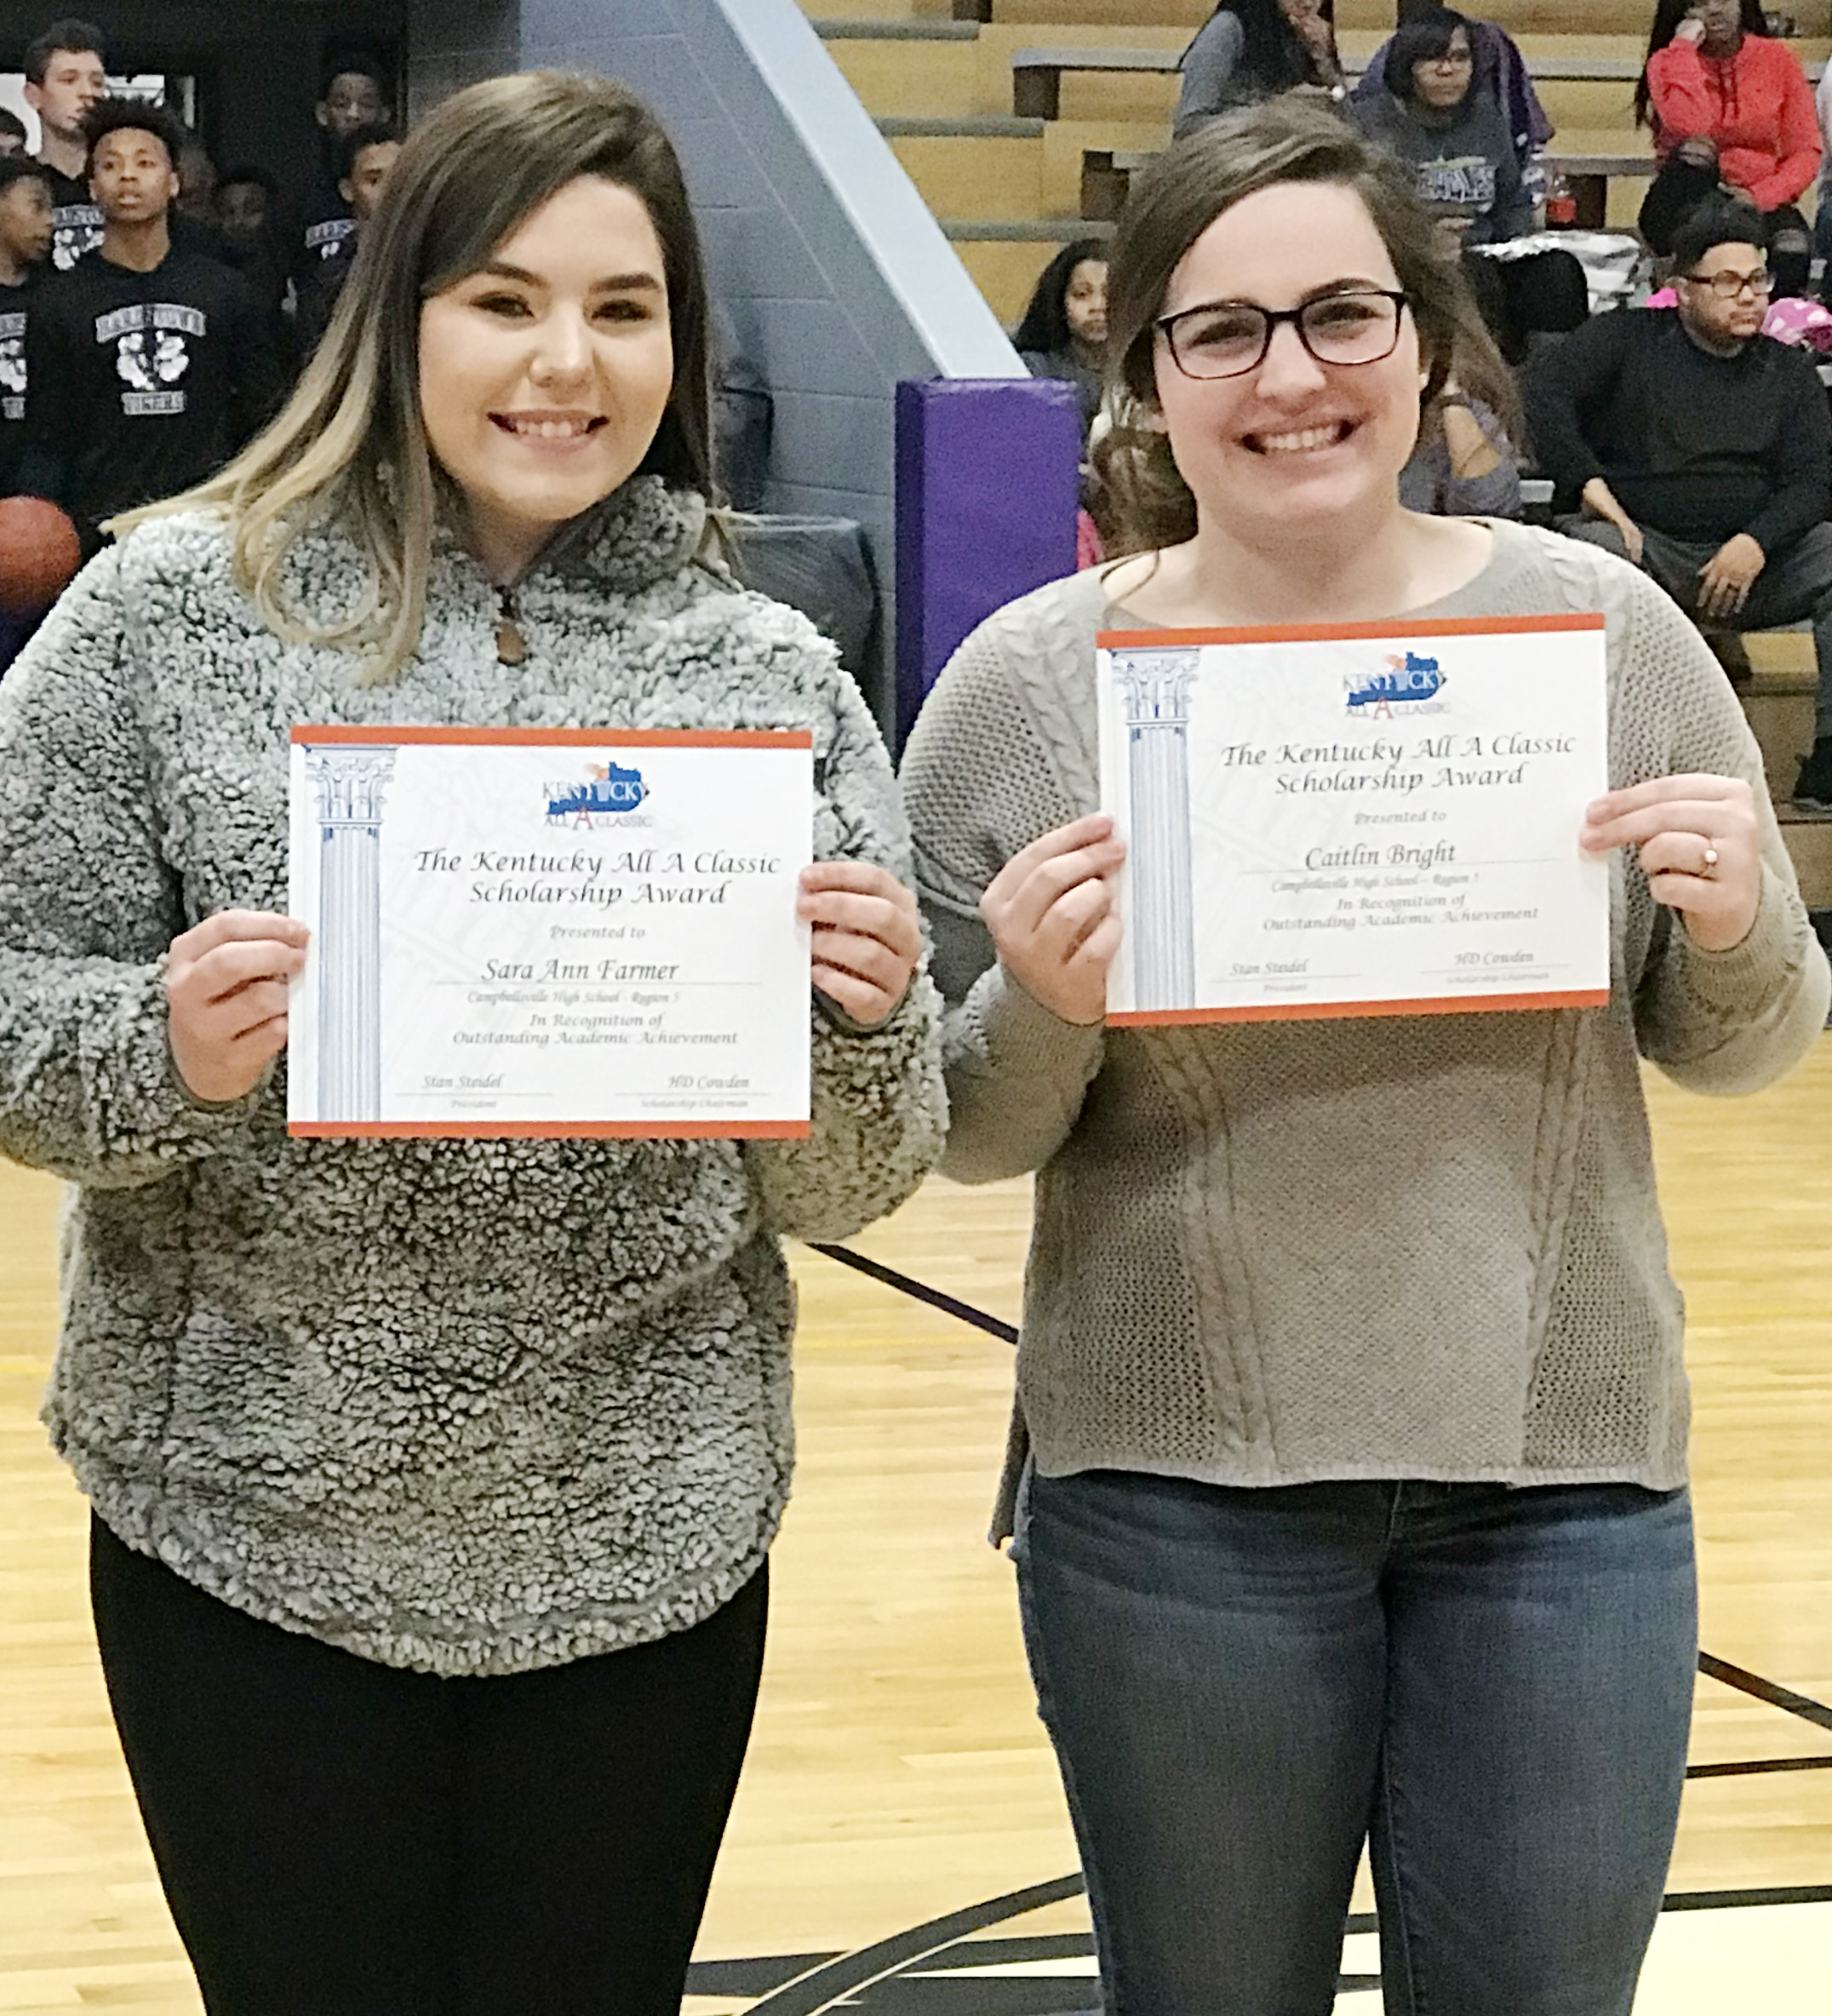 Campbellsville High School seniors Sara Farmer, at left, and Caitlin Bright recently received academic scholarships to help them attend college.